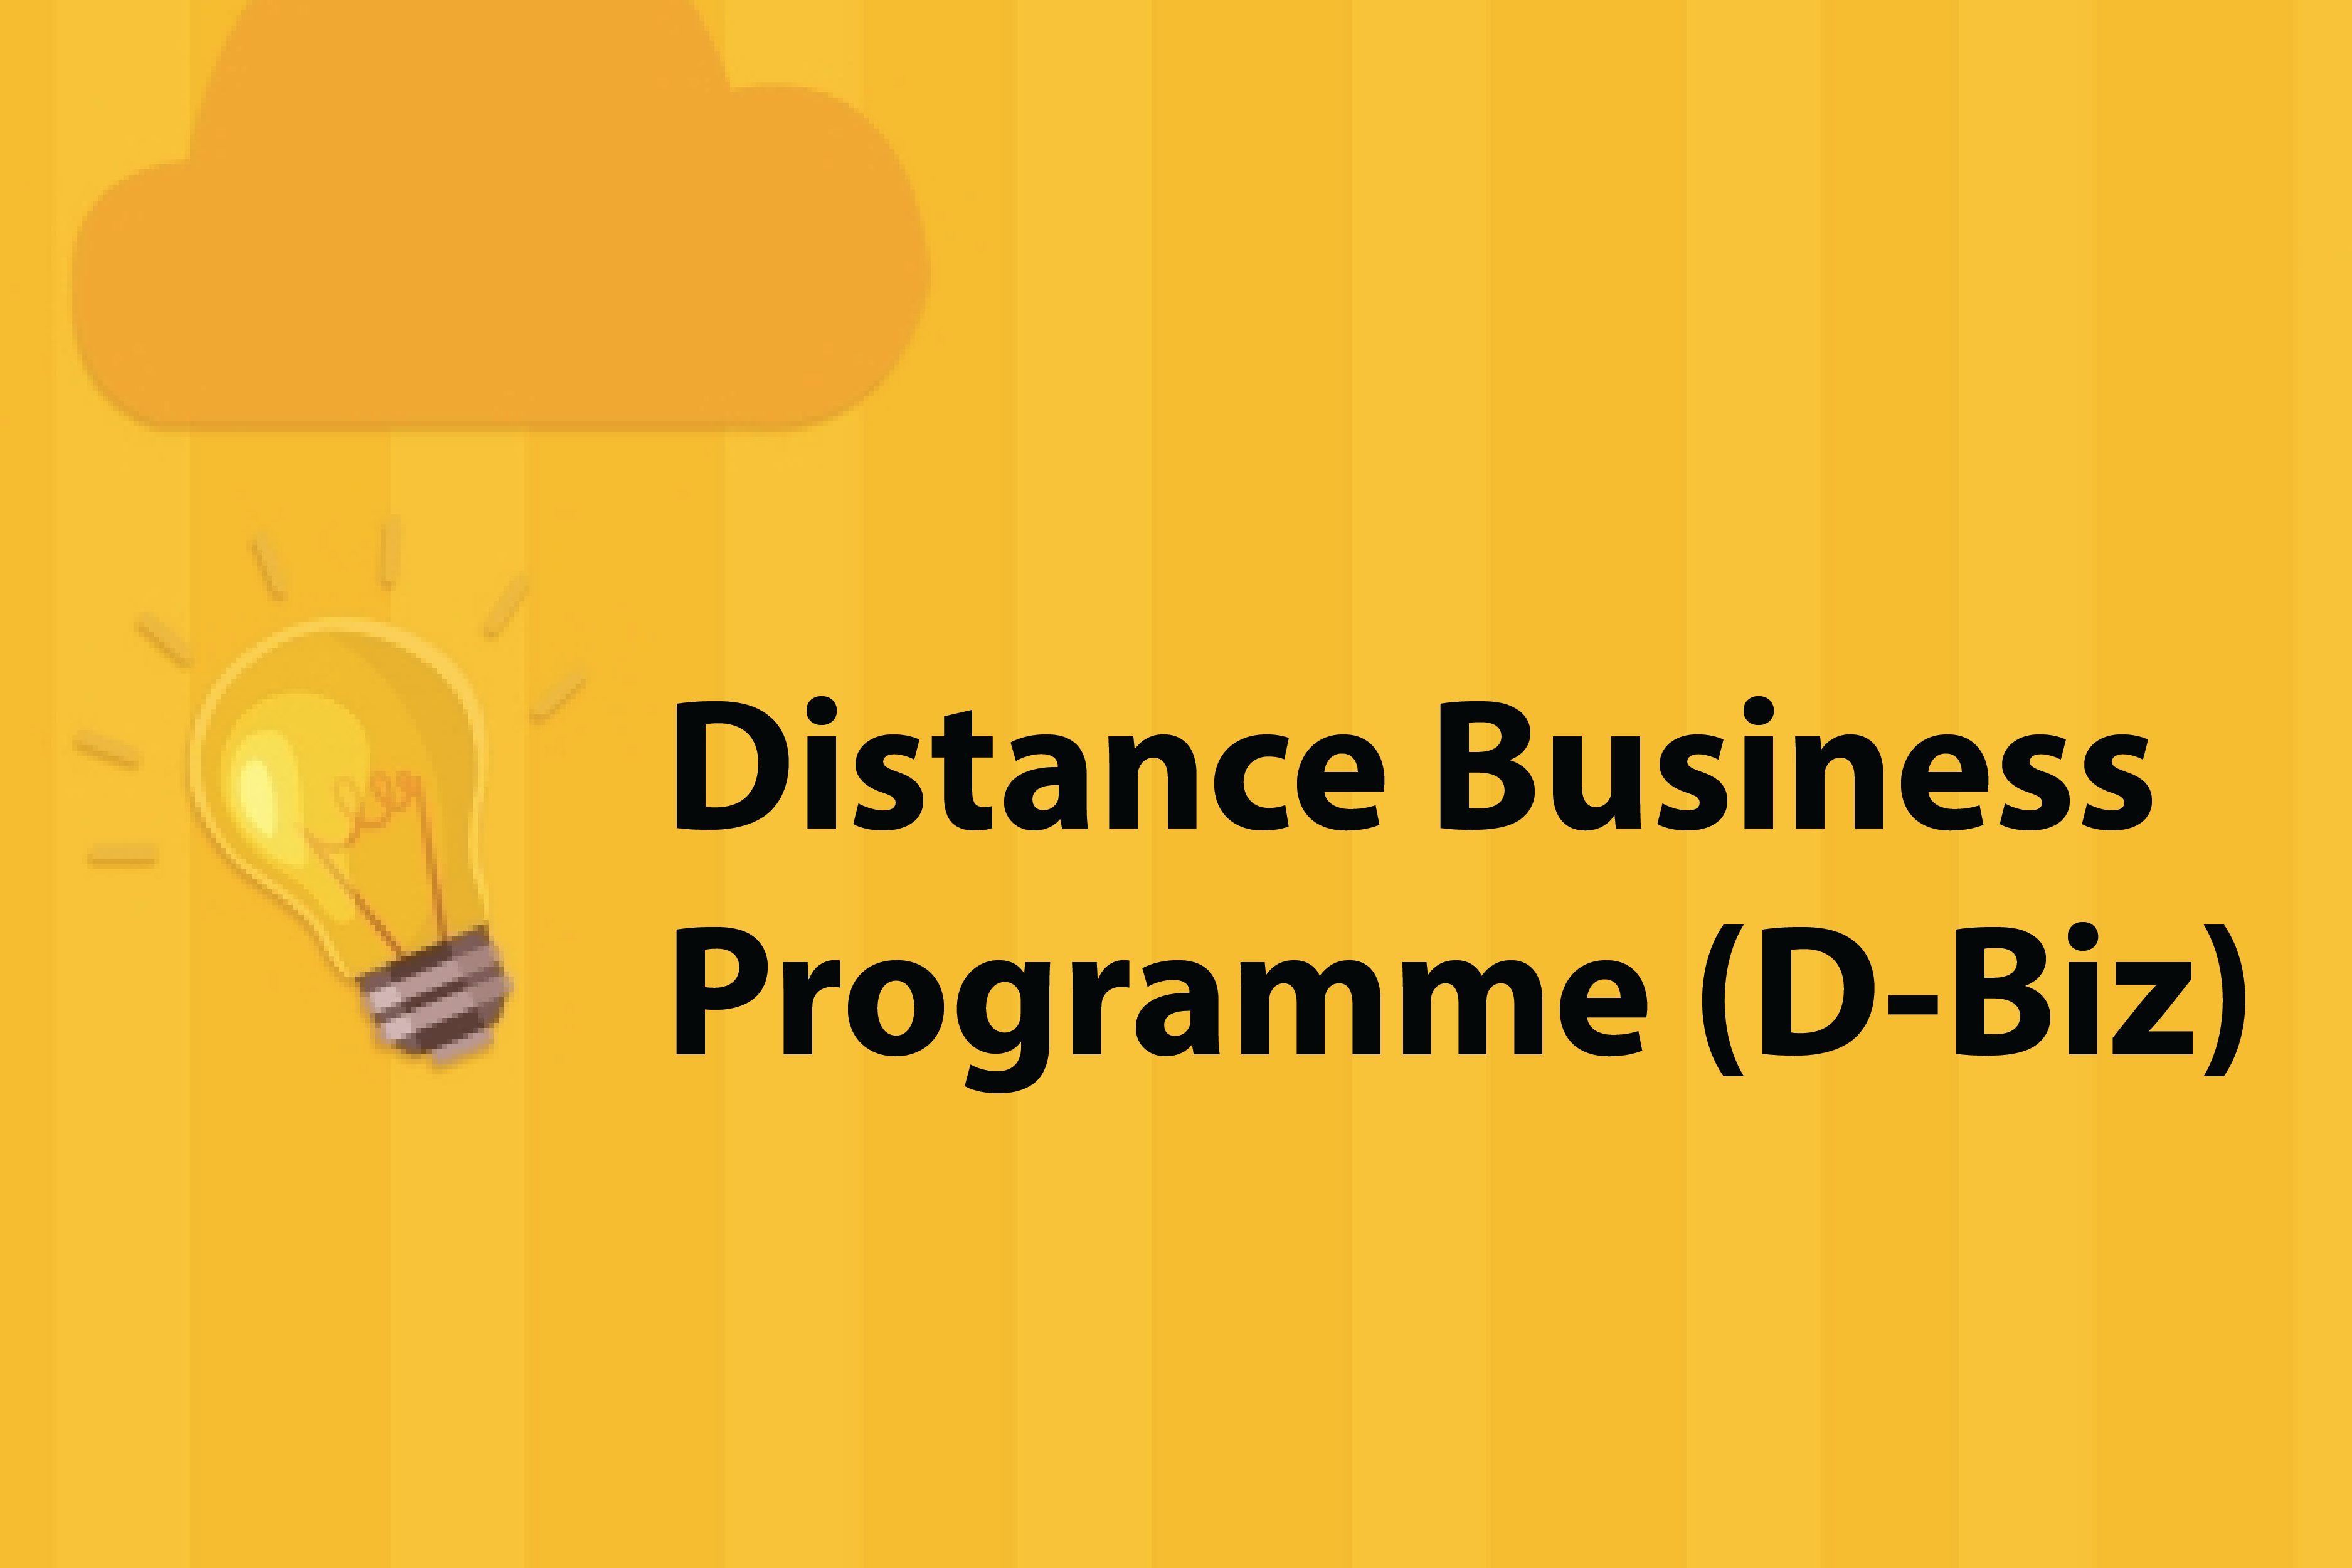 Distance Business Programme (D-Biz) - GovHK - COVID19 Small Business Support